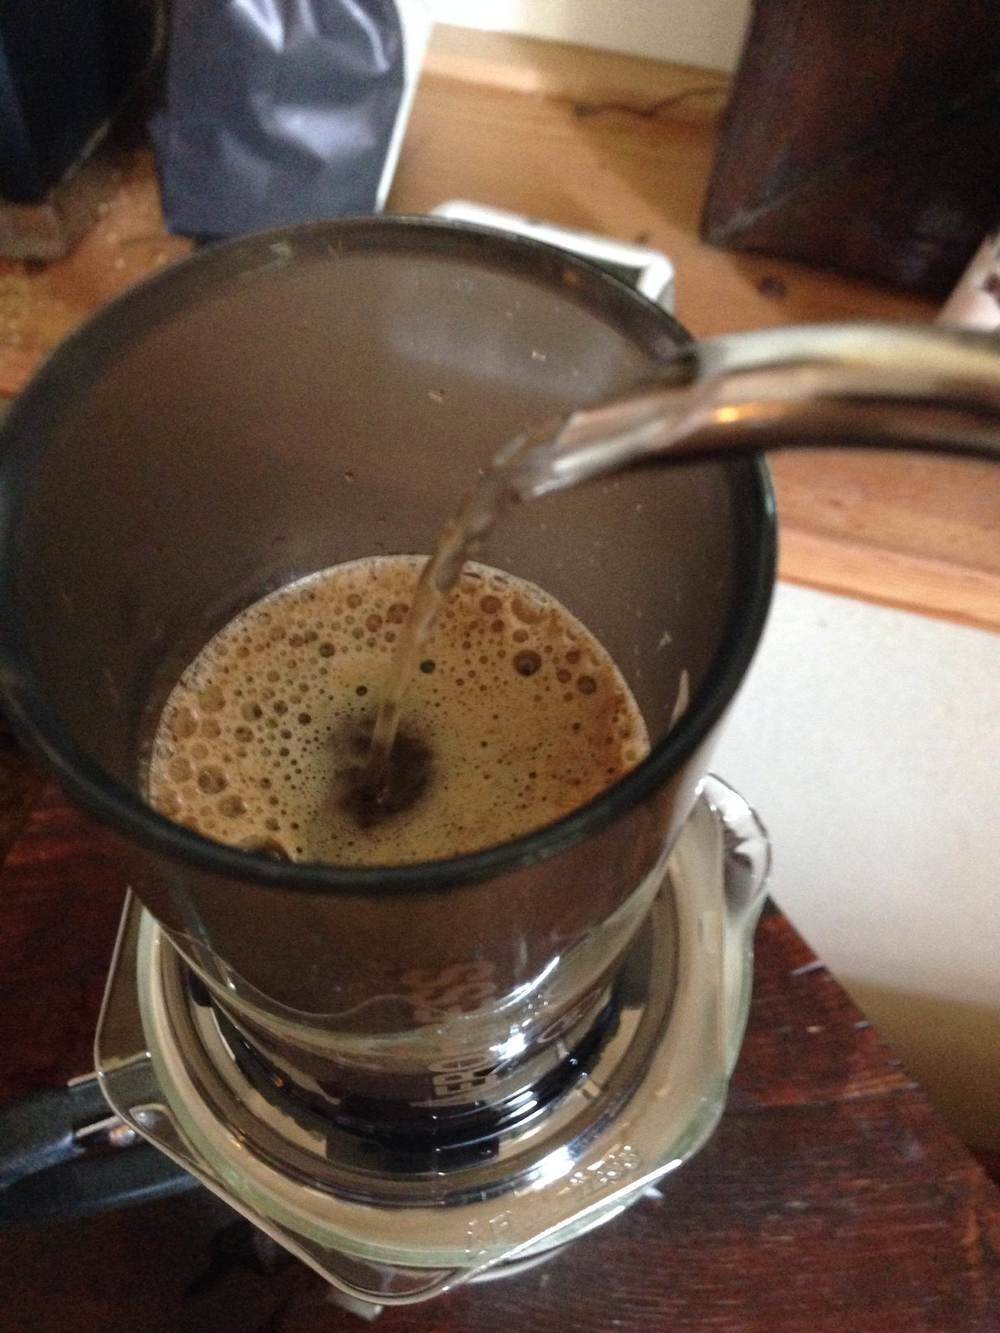 Getting the brew going by adding the rest of that hot water...